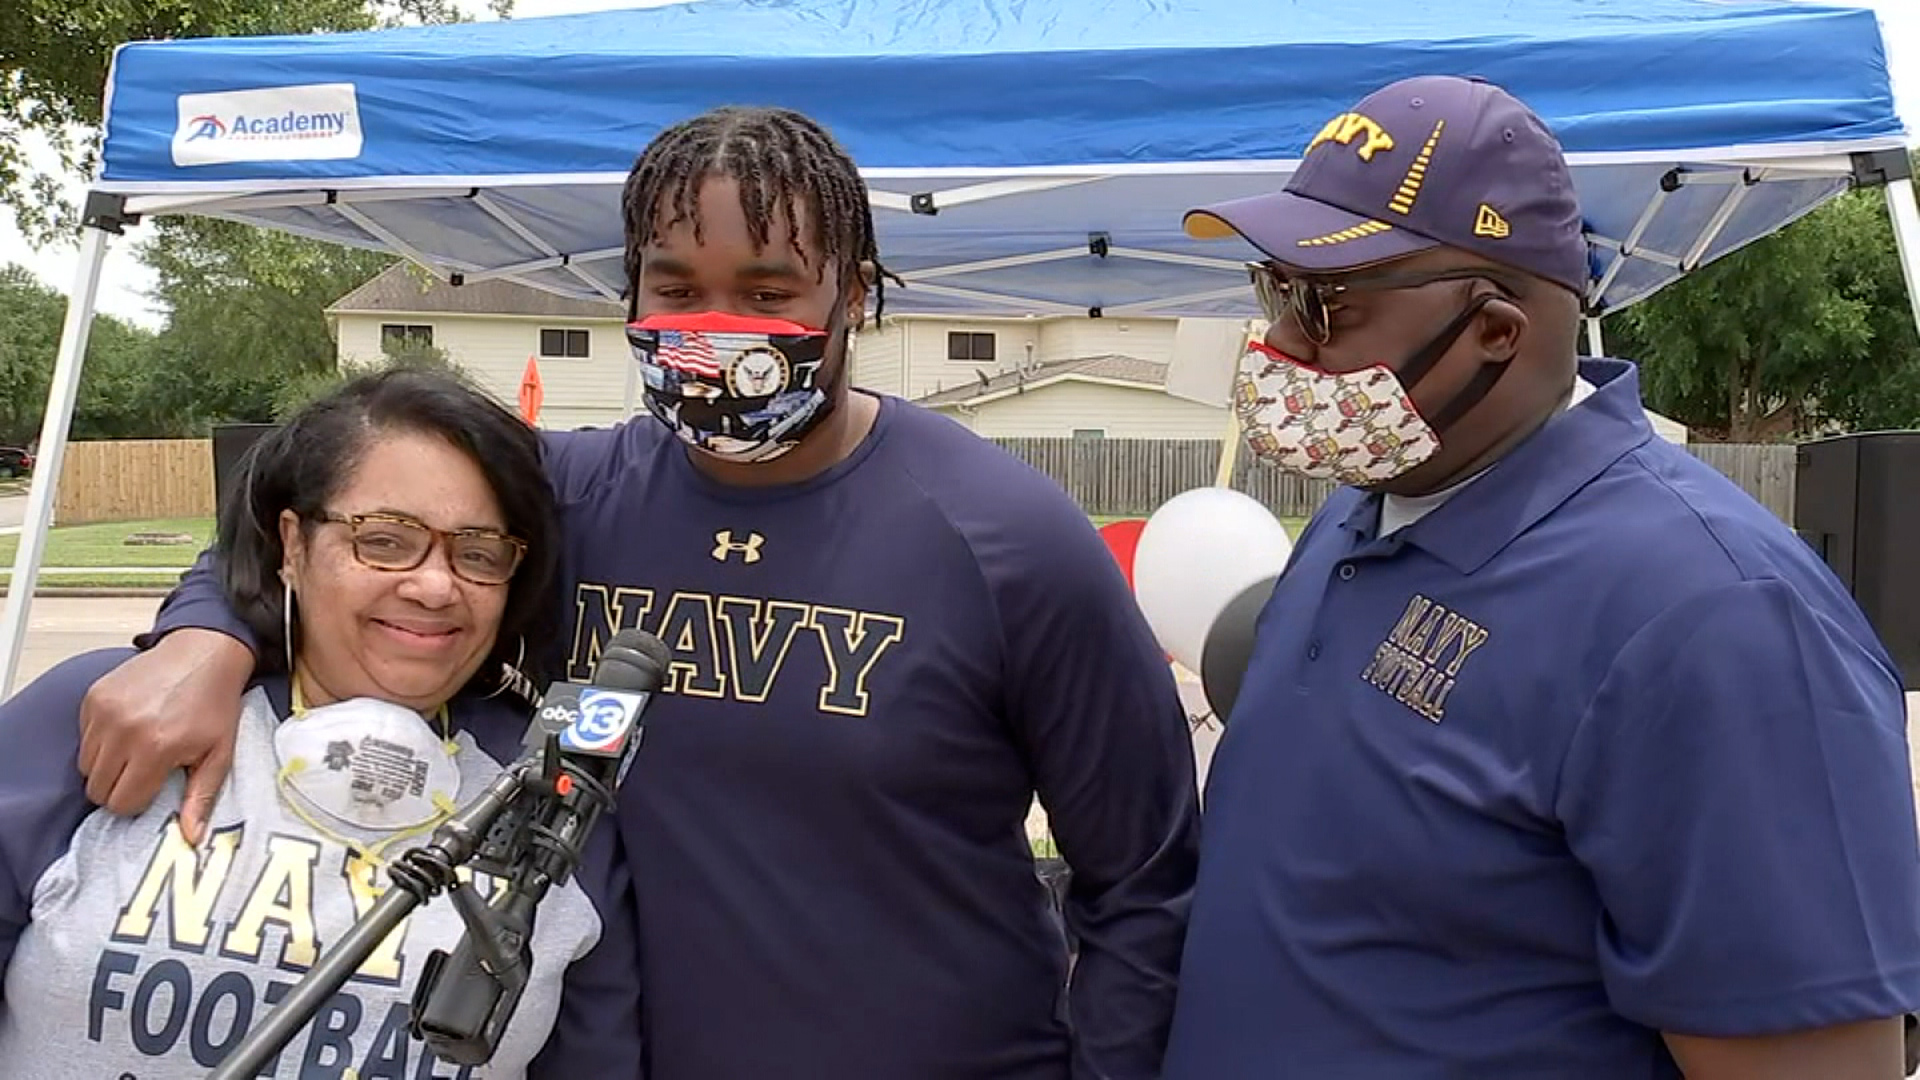 The mother of a Naval Academy football prospect is killed by random gunfire after dropping off her son at school